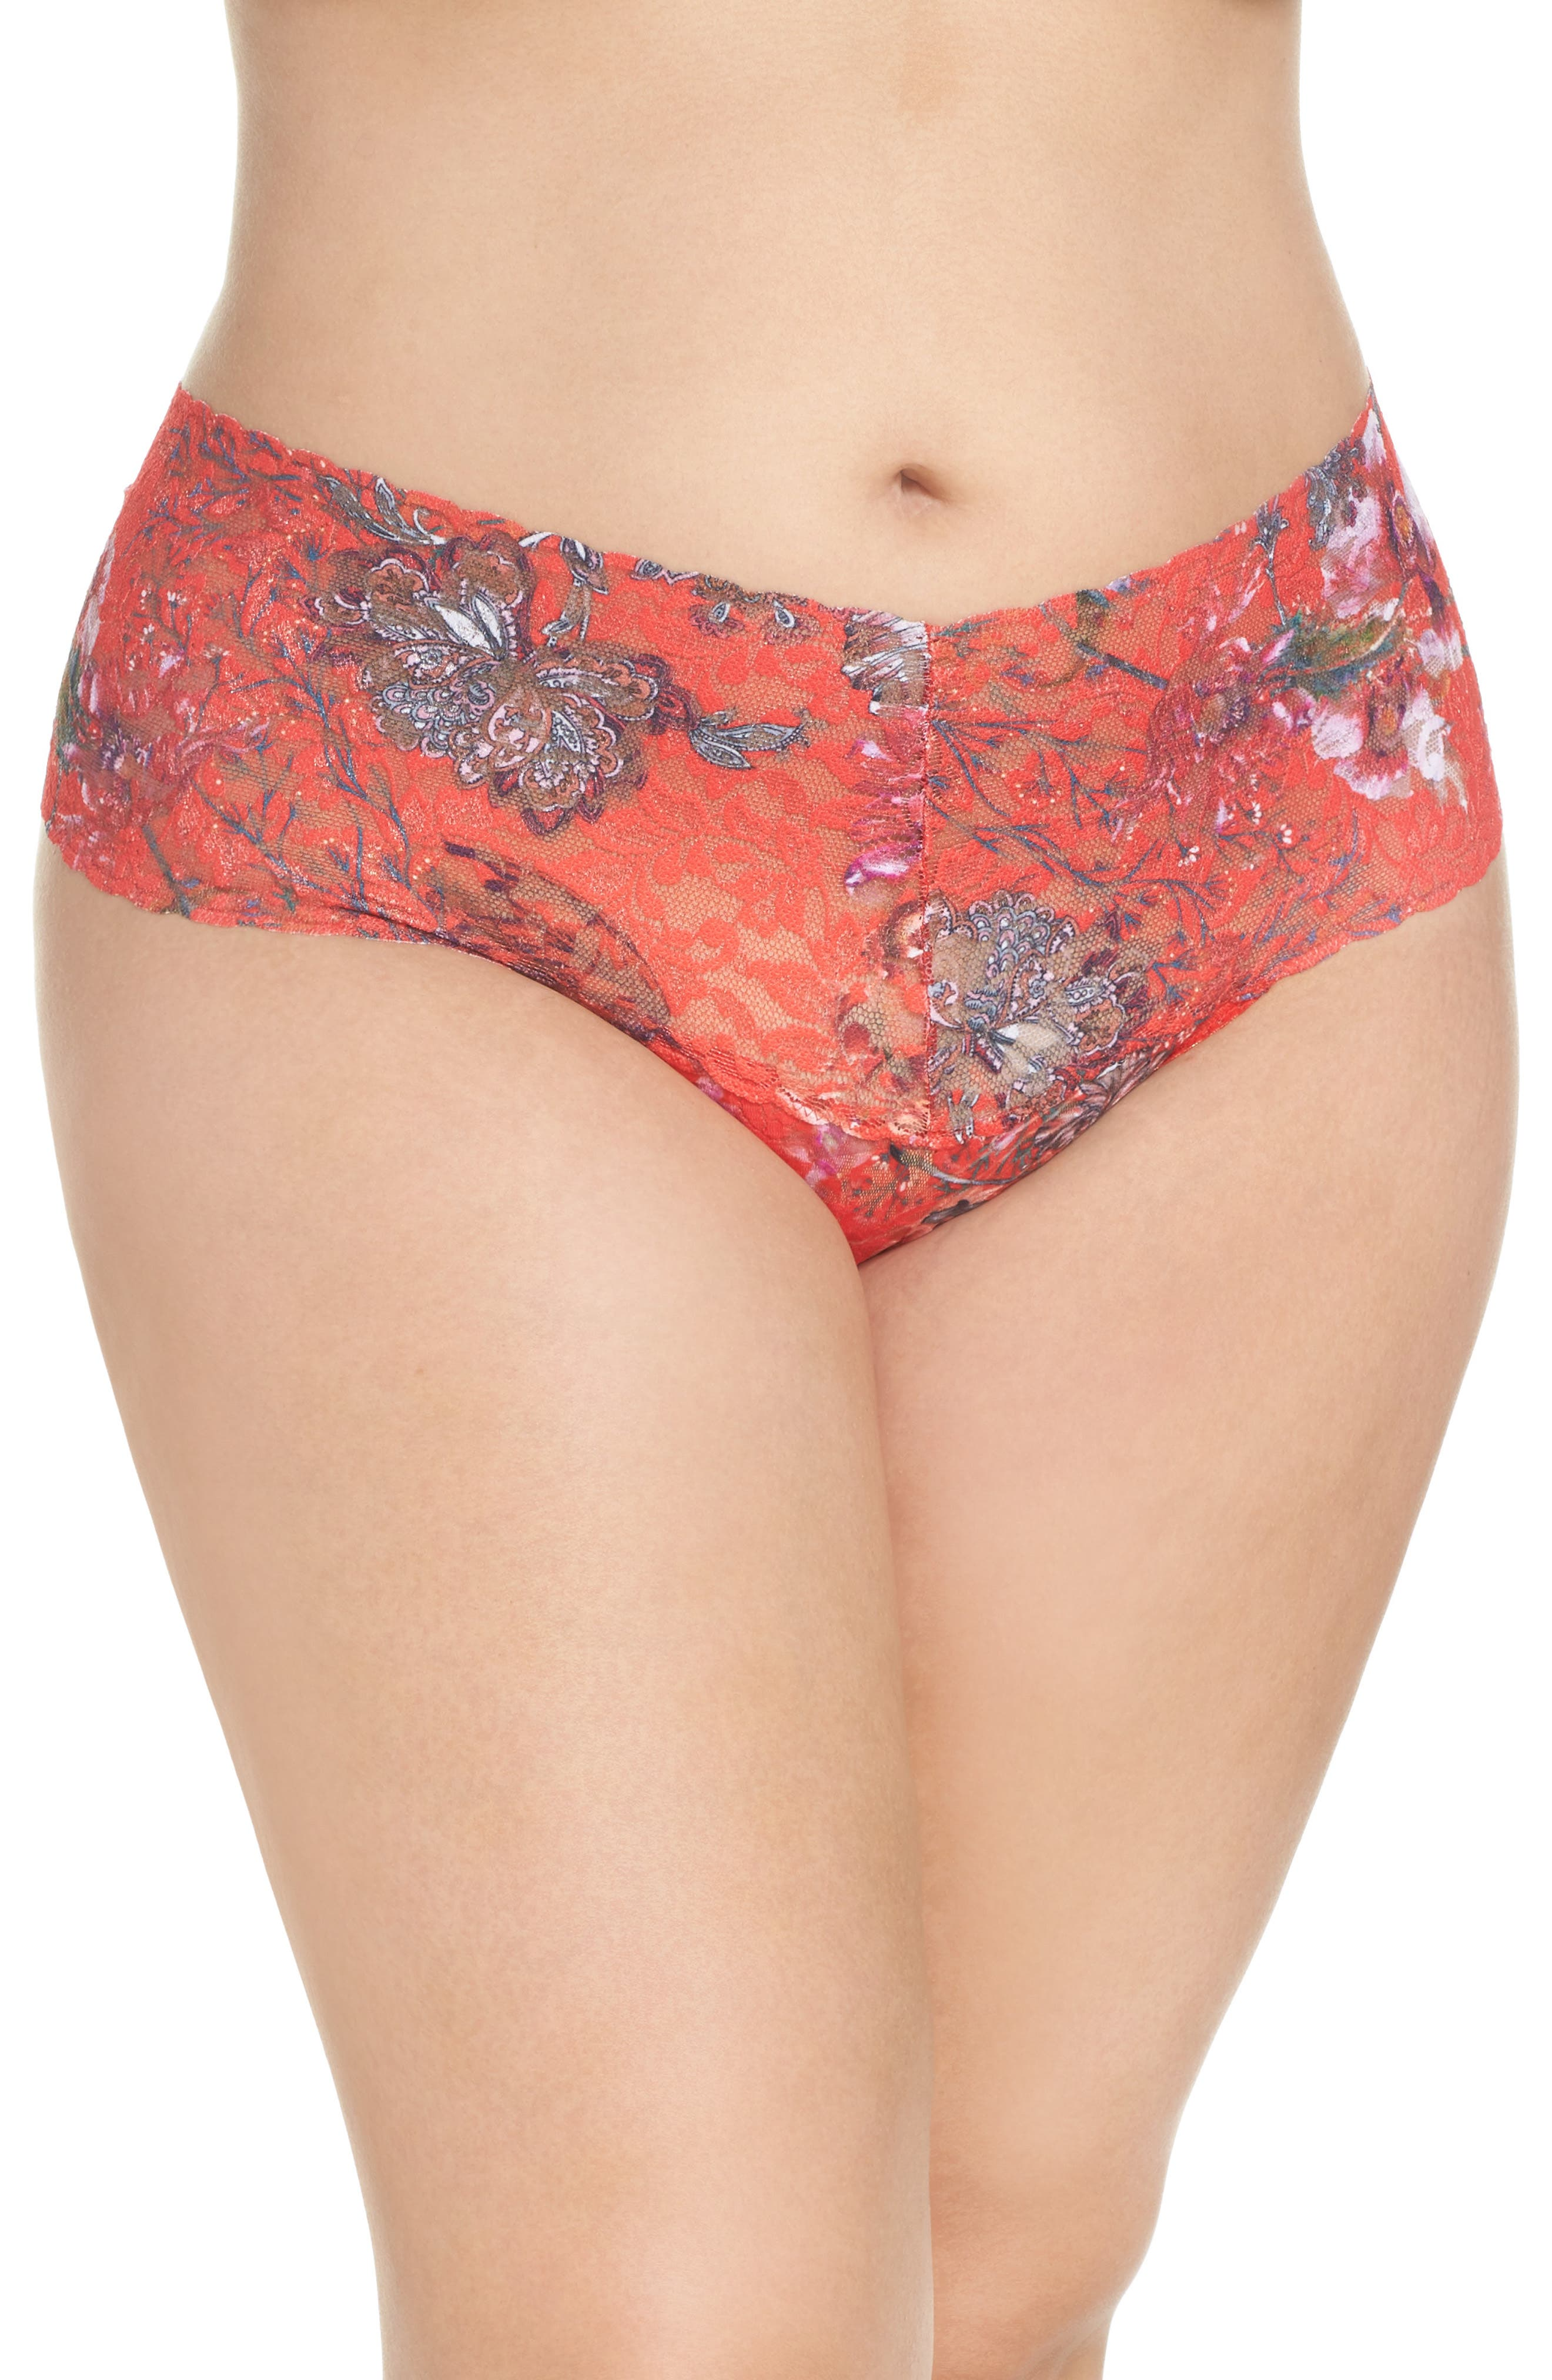 Alternate Image 1 Selected - Hanky Panky Fiery Floral Thong (Plus Size)